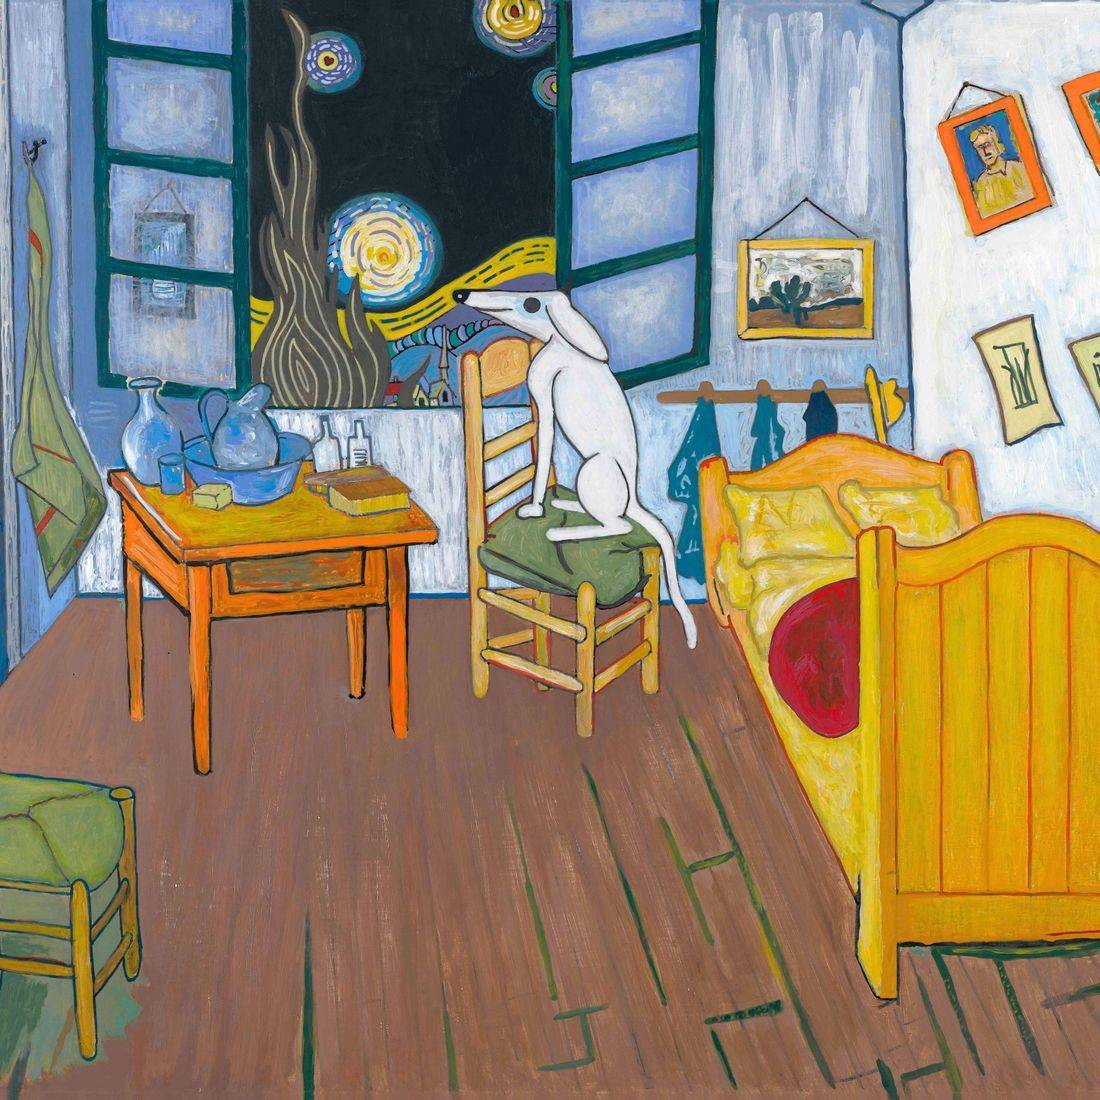 Vincent Van Gogh, Starry Night, The Bedroom, Man's Best Friend, Dogs, Artists' Dogs